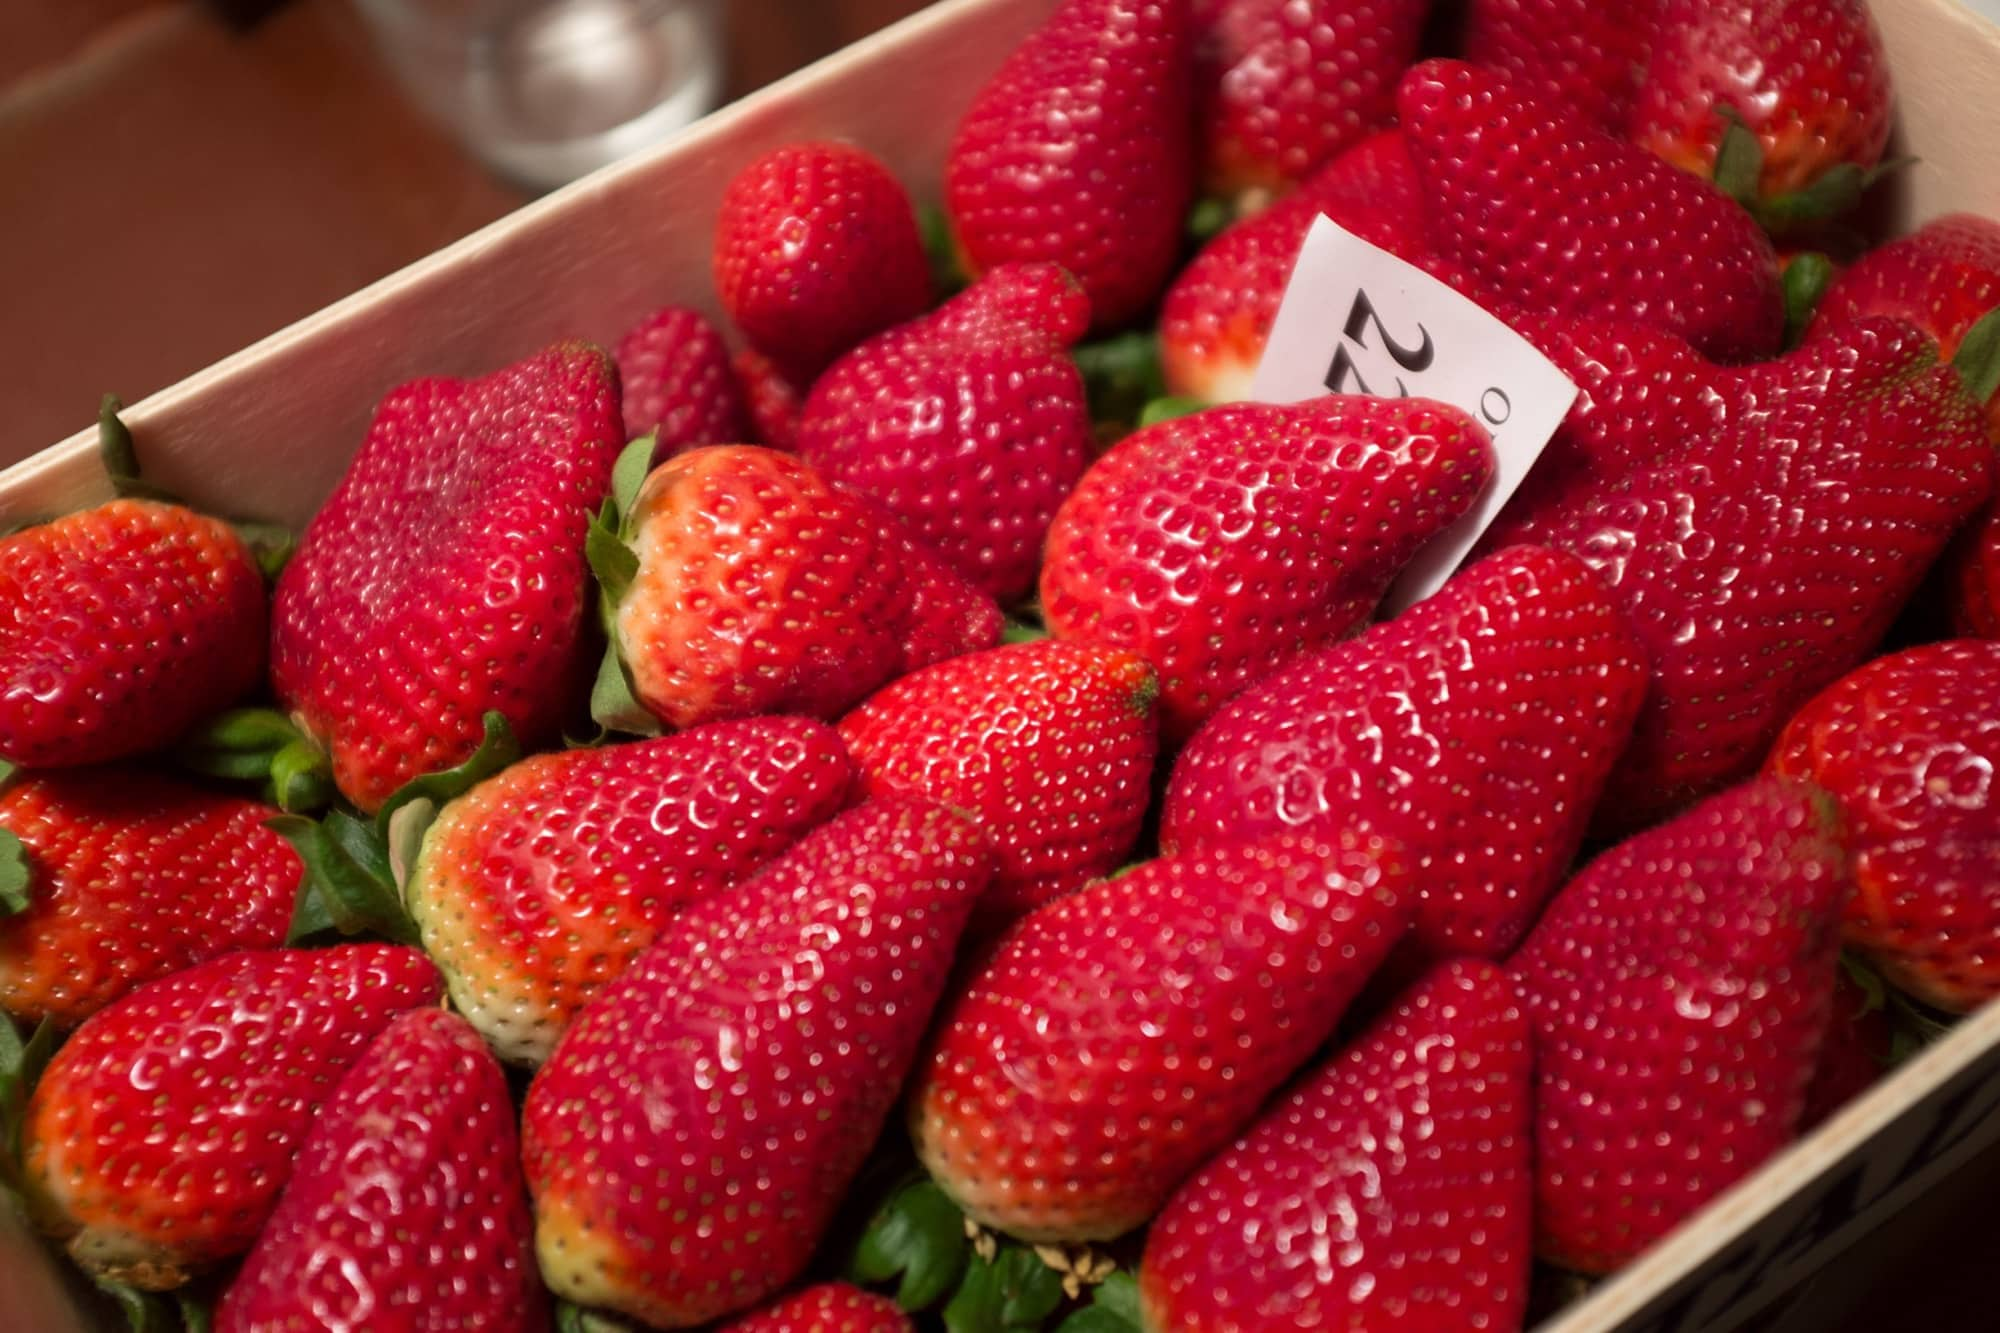 Strawberries multi-select